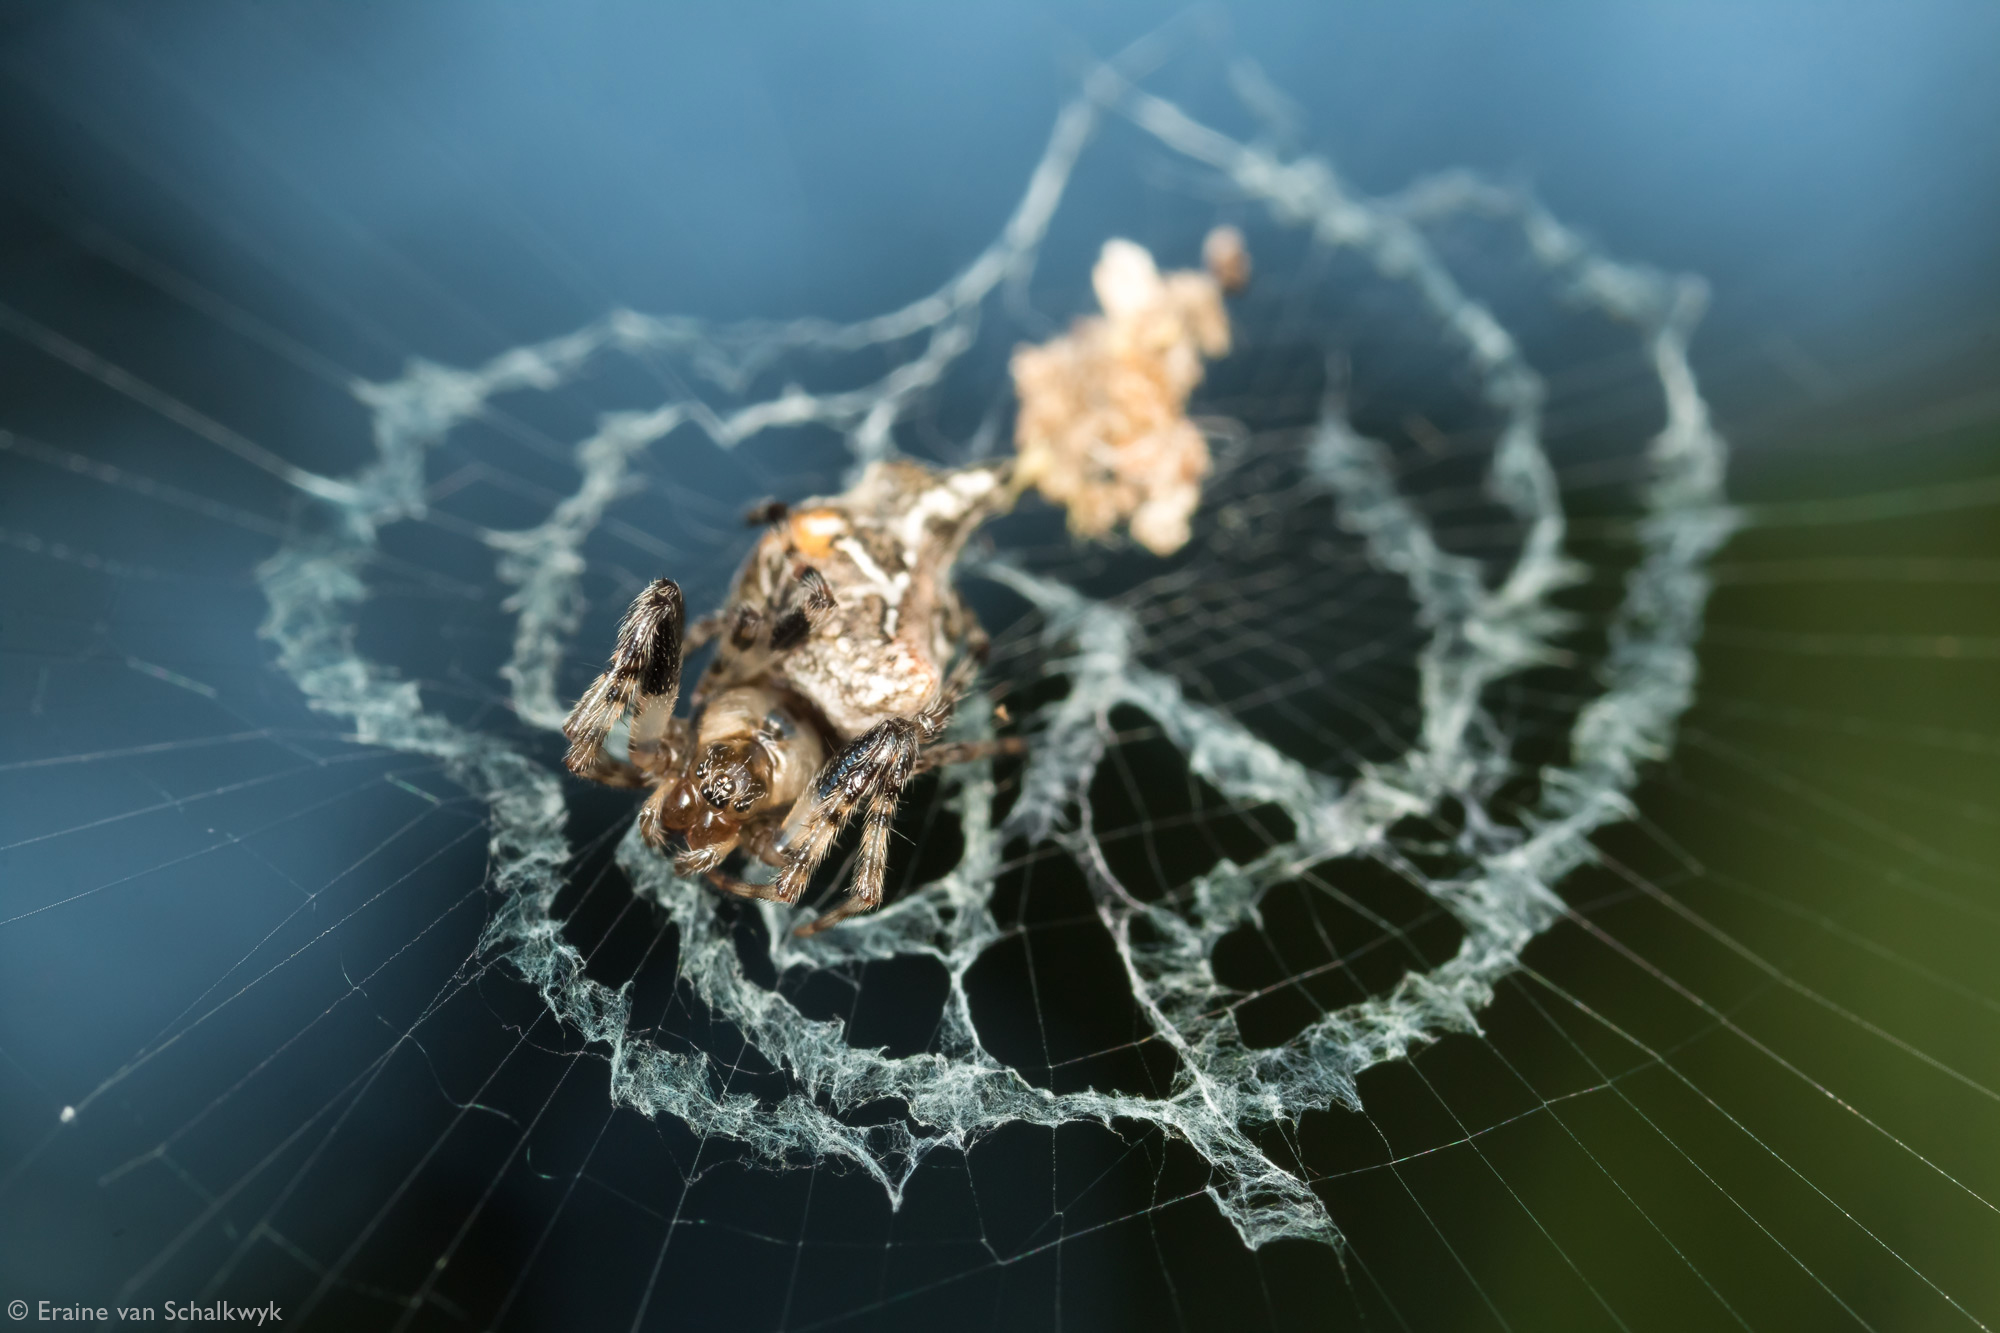 Spider in an orb web, spider, arachnid, macro photography